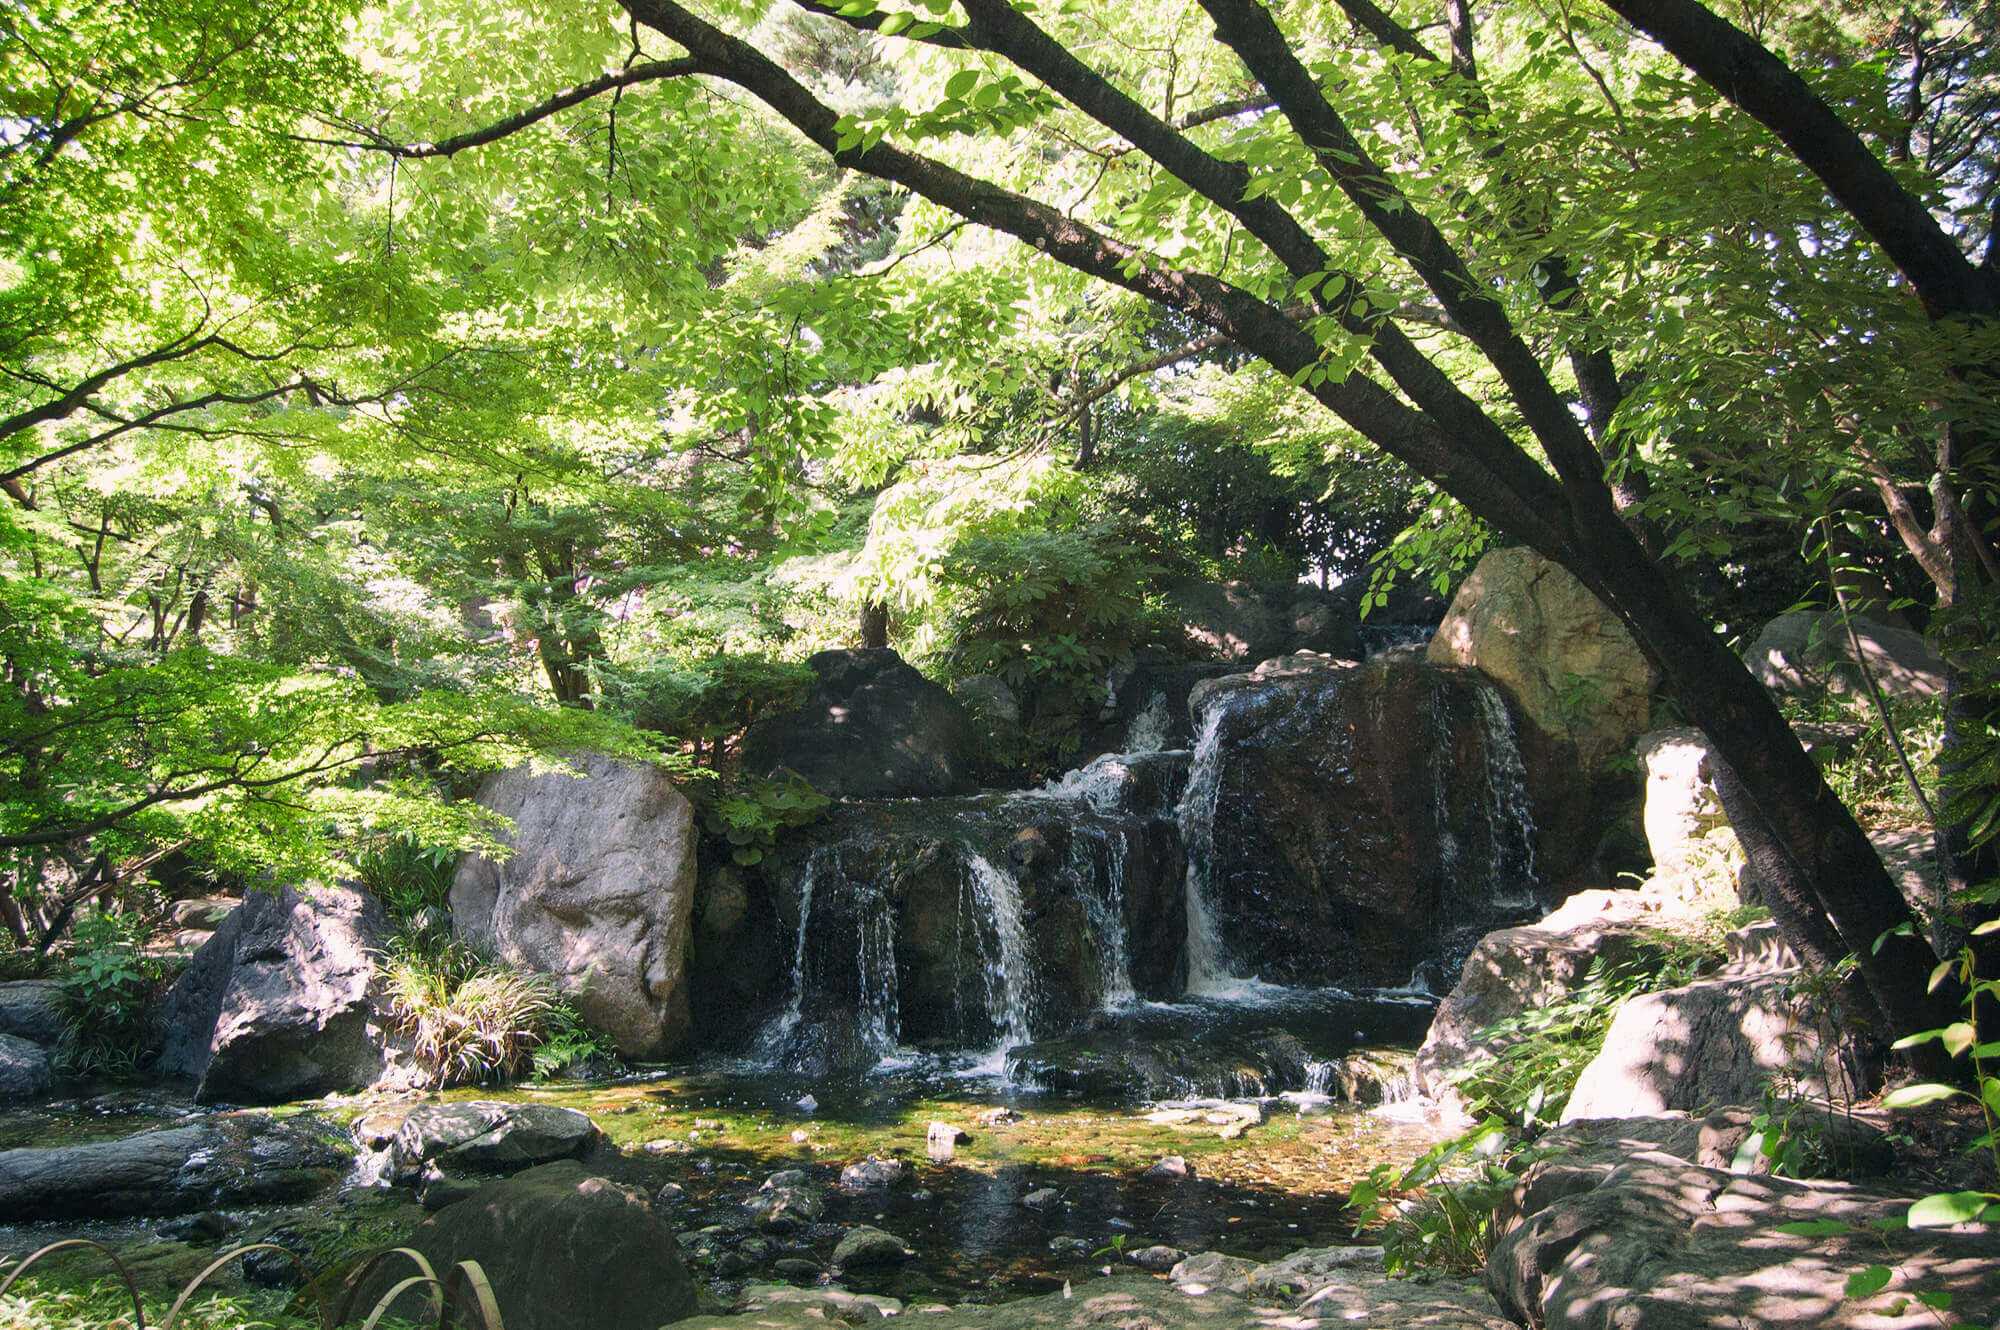 Waterfall in Shirotori Garden